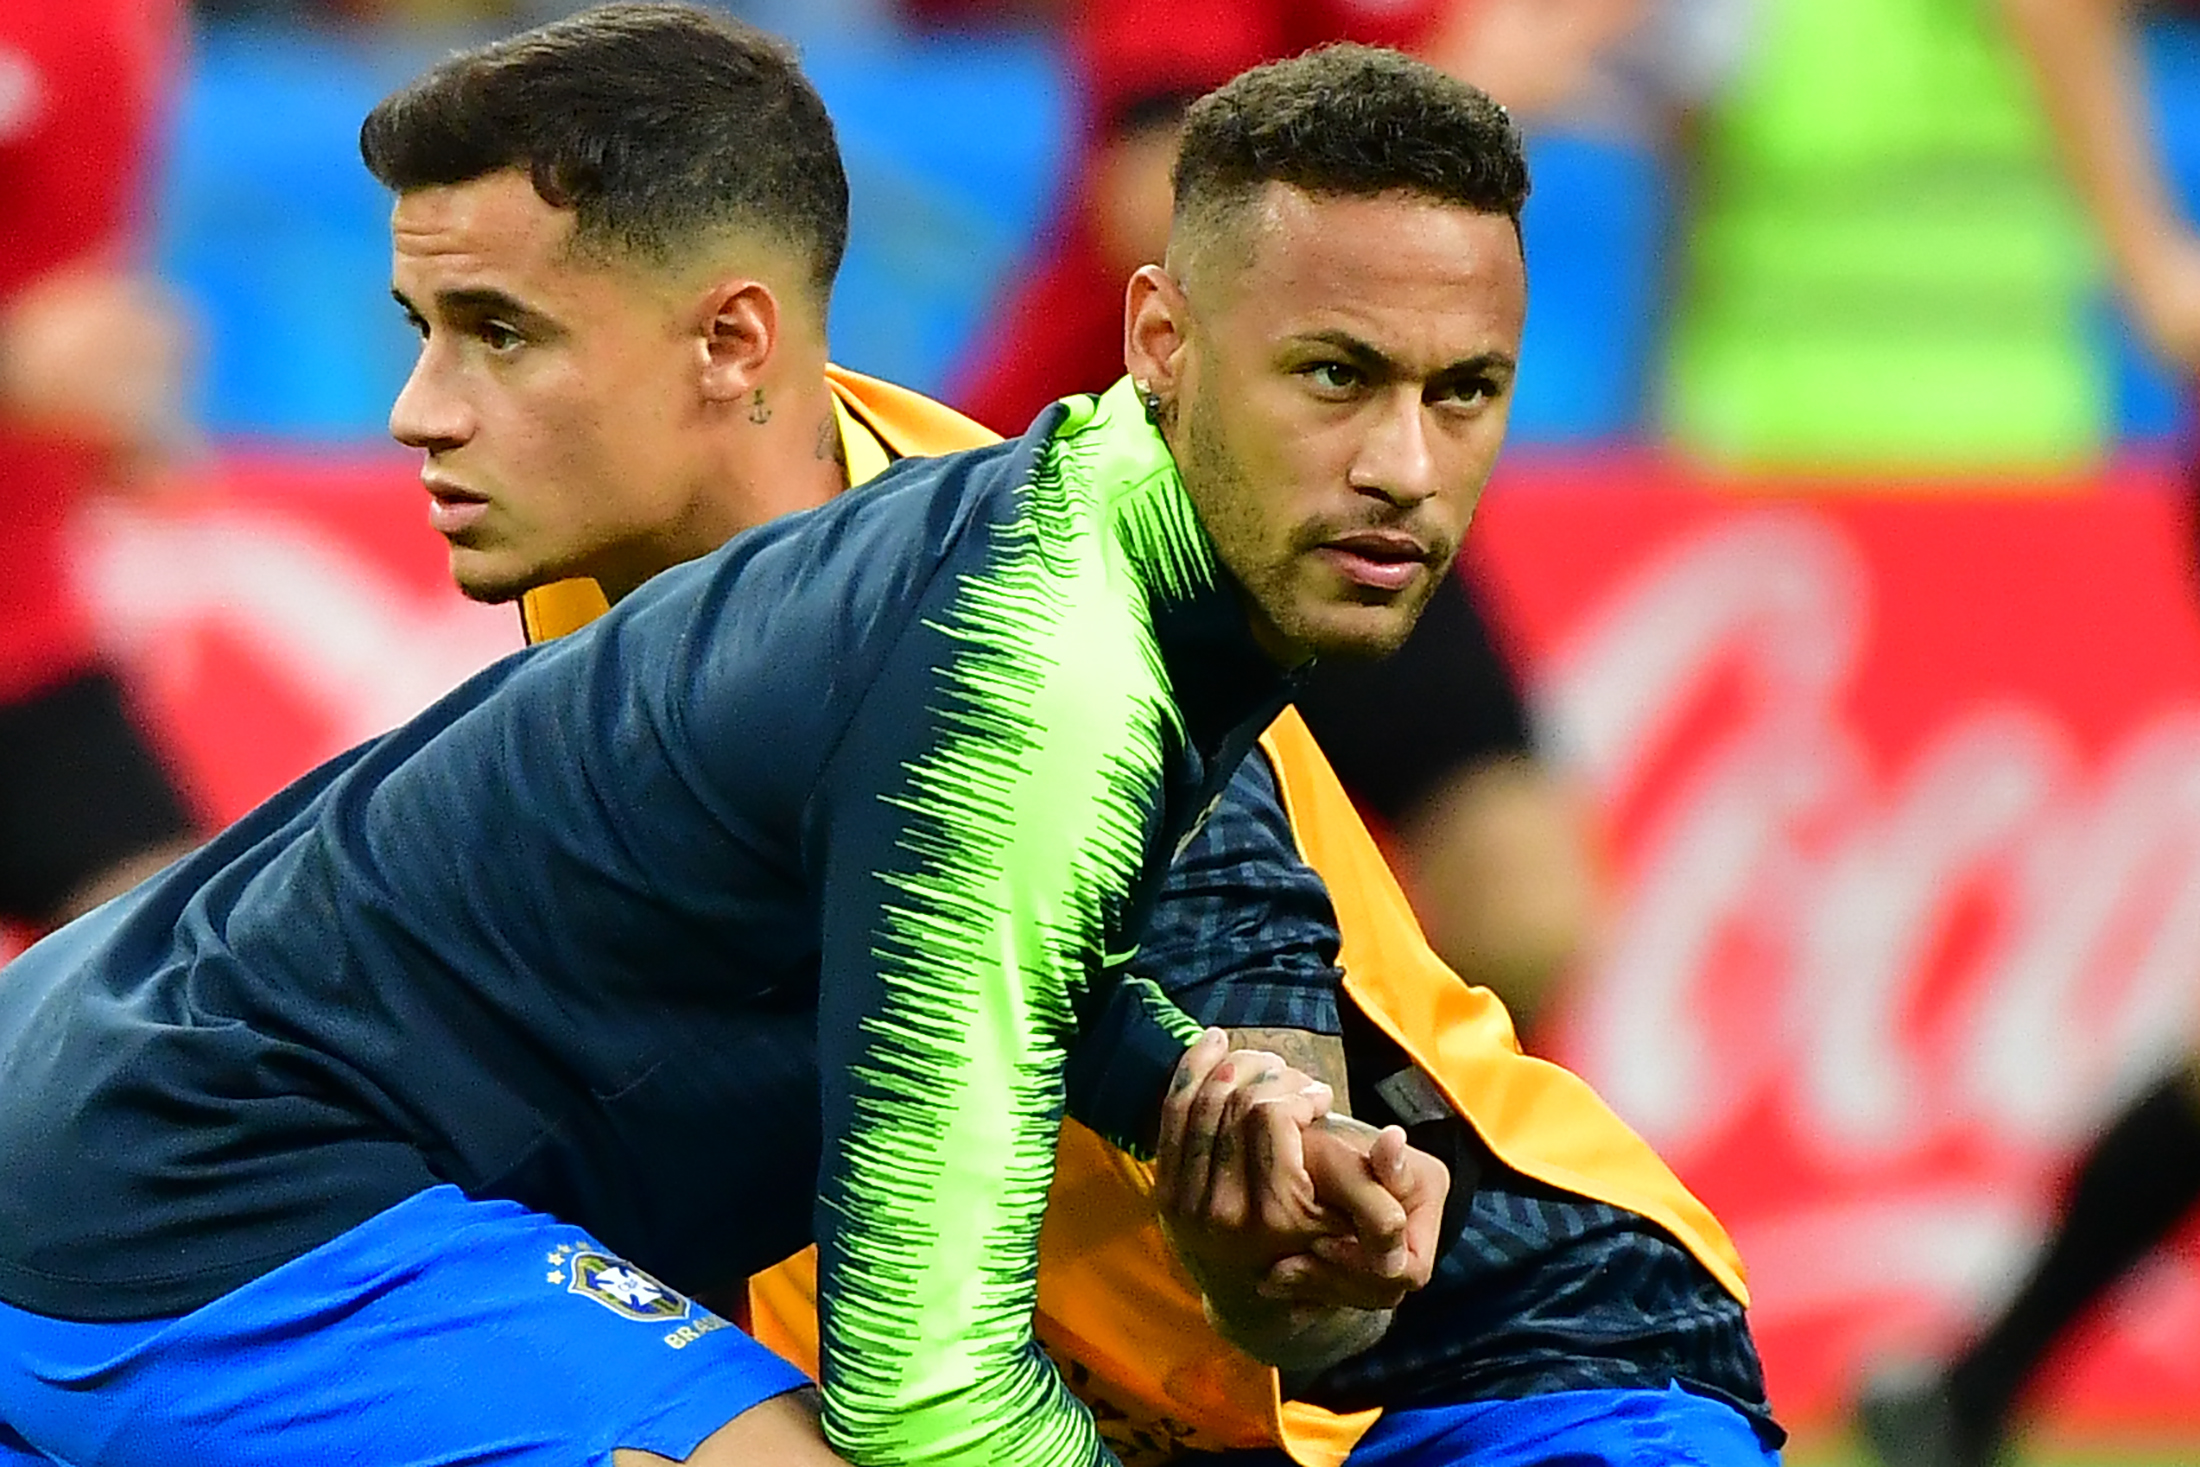 Neymar and Coutinho unavailable for Brazil (Photo by LUIS ACOSTA/AFP/Getty Images)